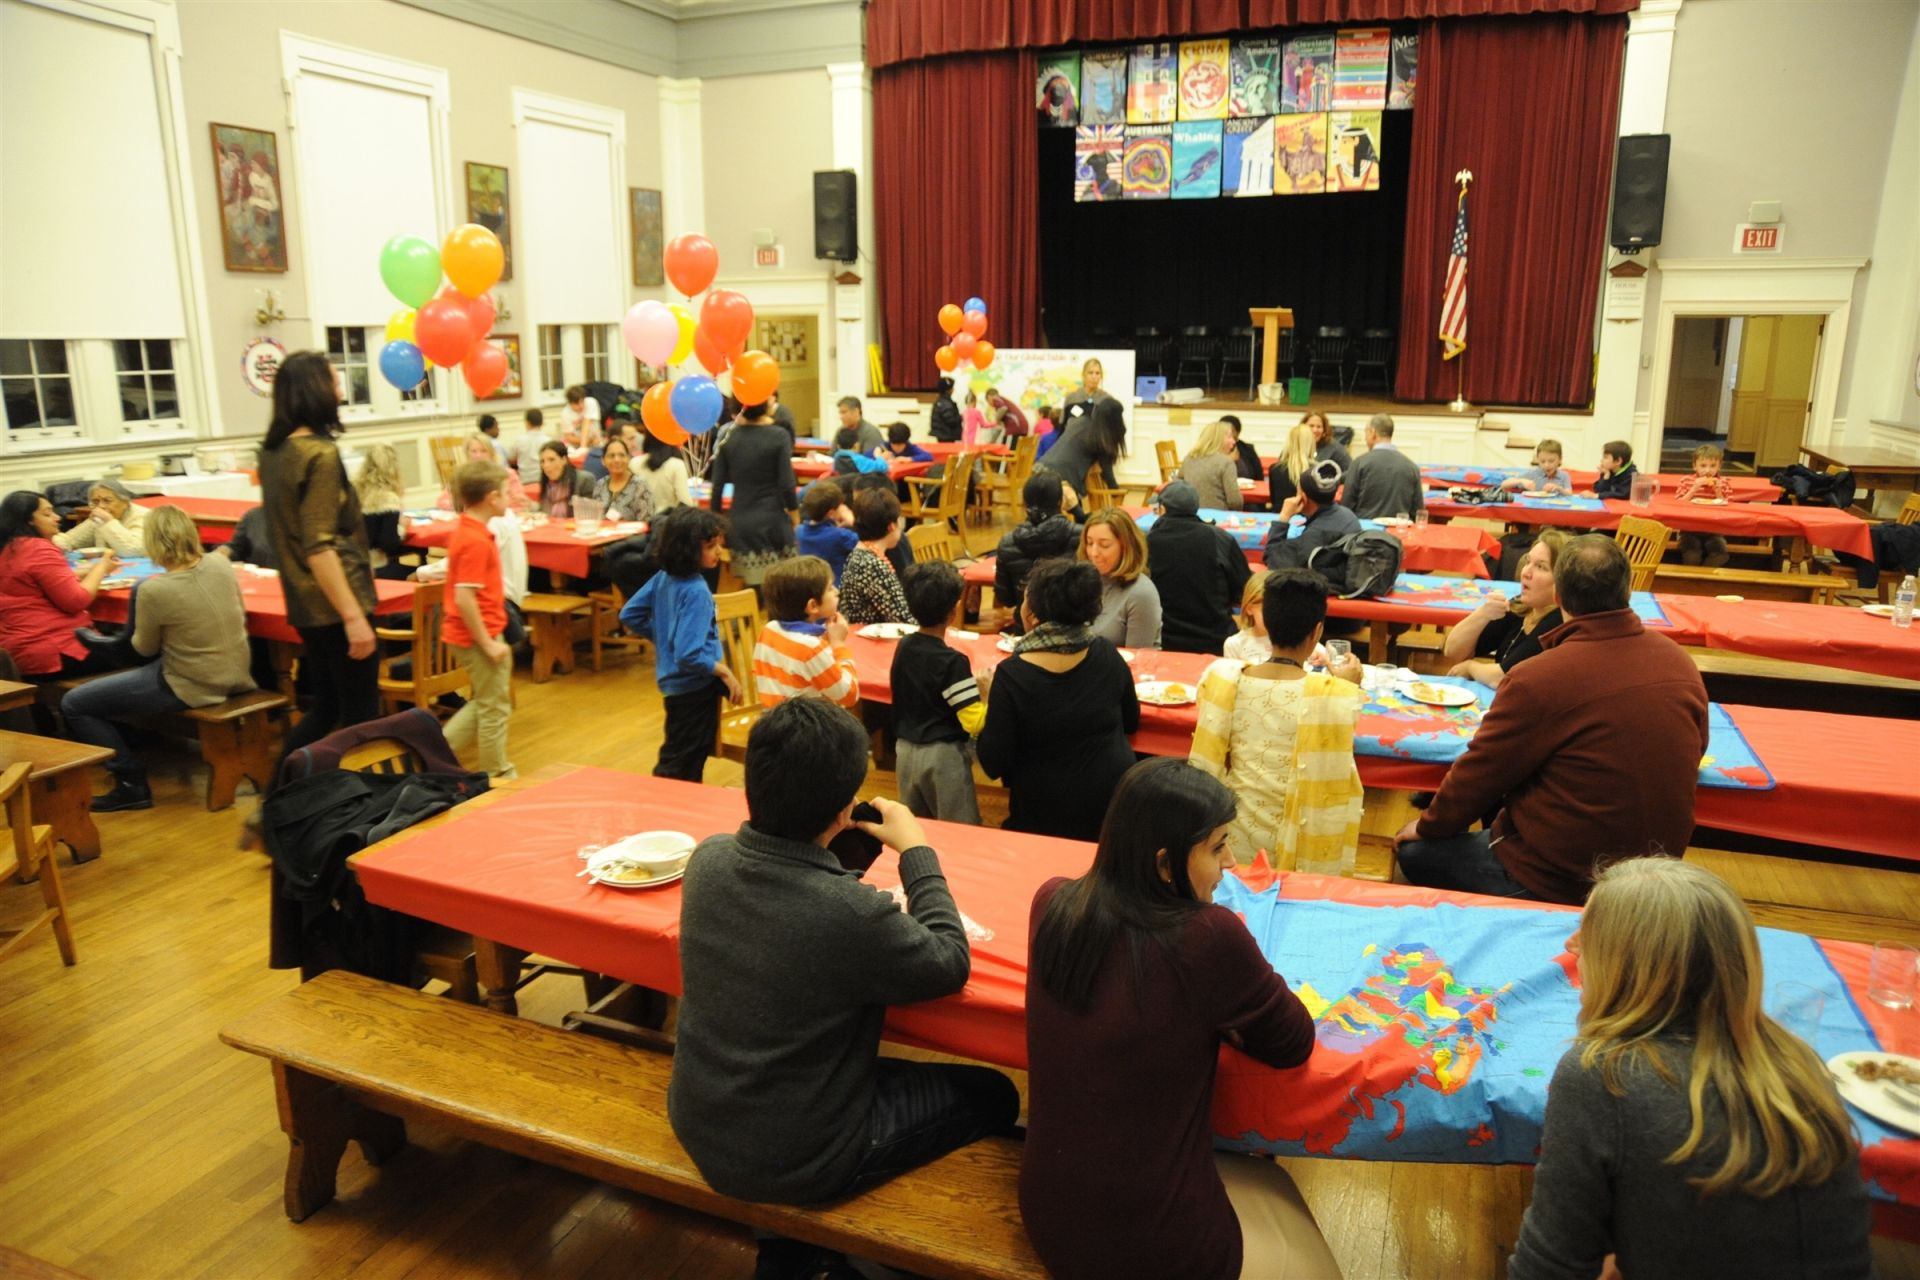 Students and parents enjoy cuisine from around the world at the Multicultural Potluck